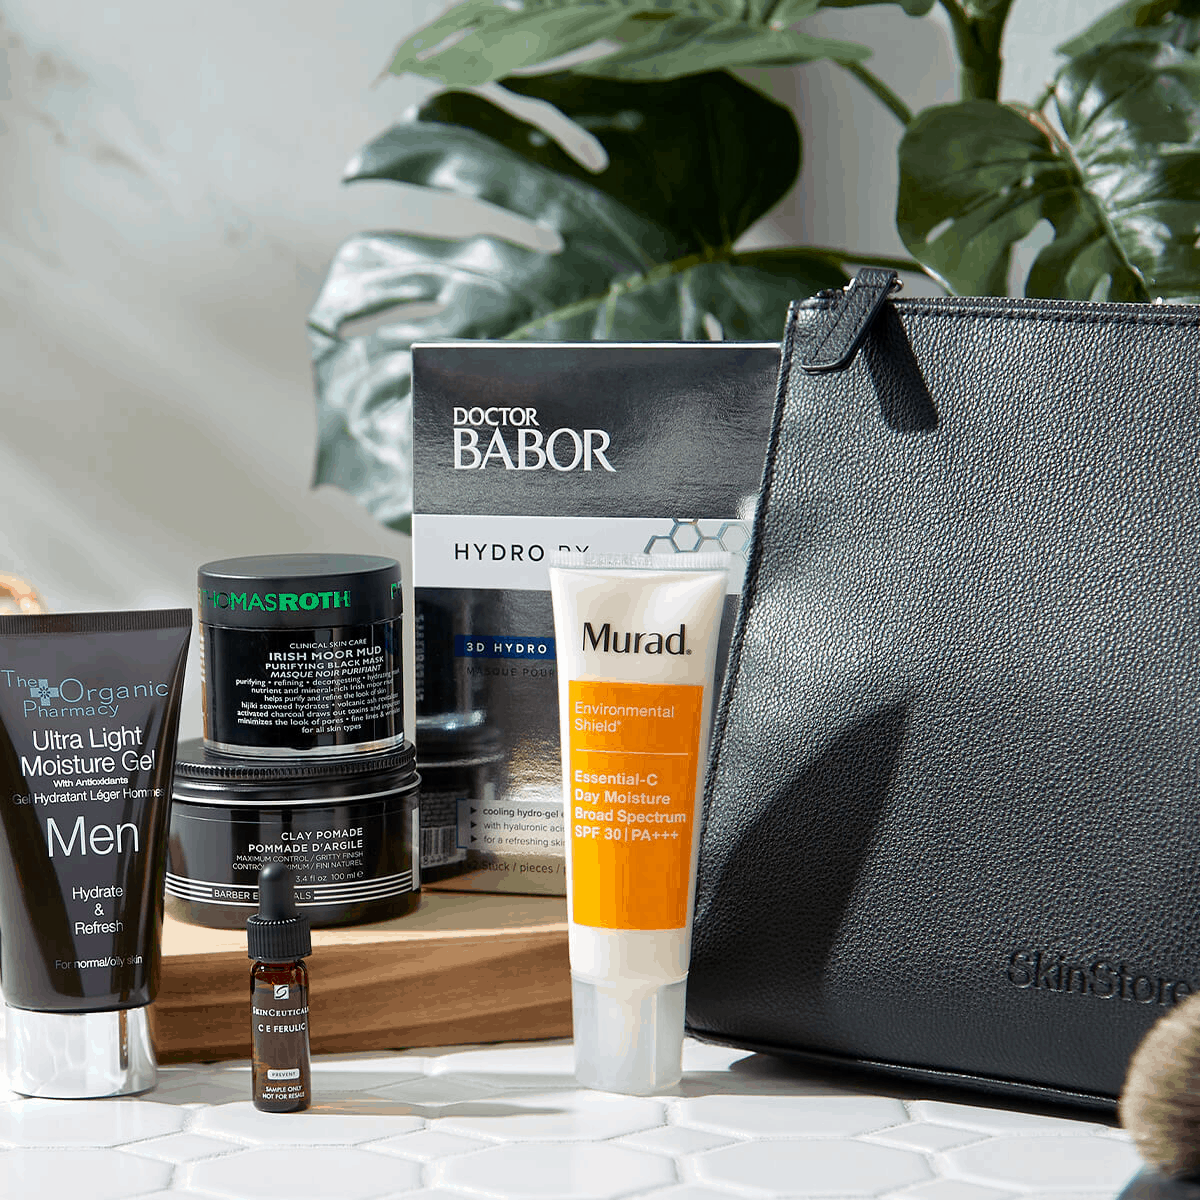 SkinStore Father's Day Coupon: Get 30% Off On The Limited Edition Men's Collection Box!